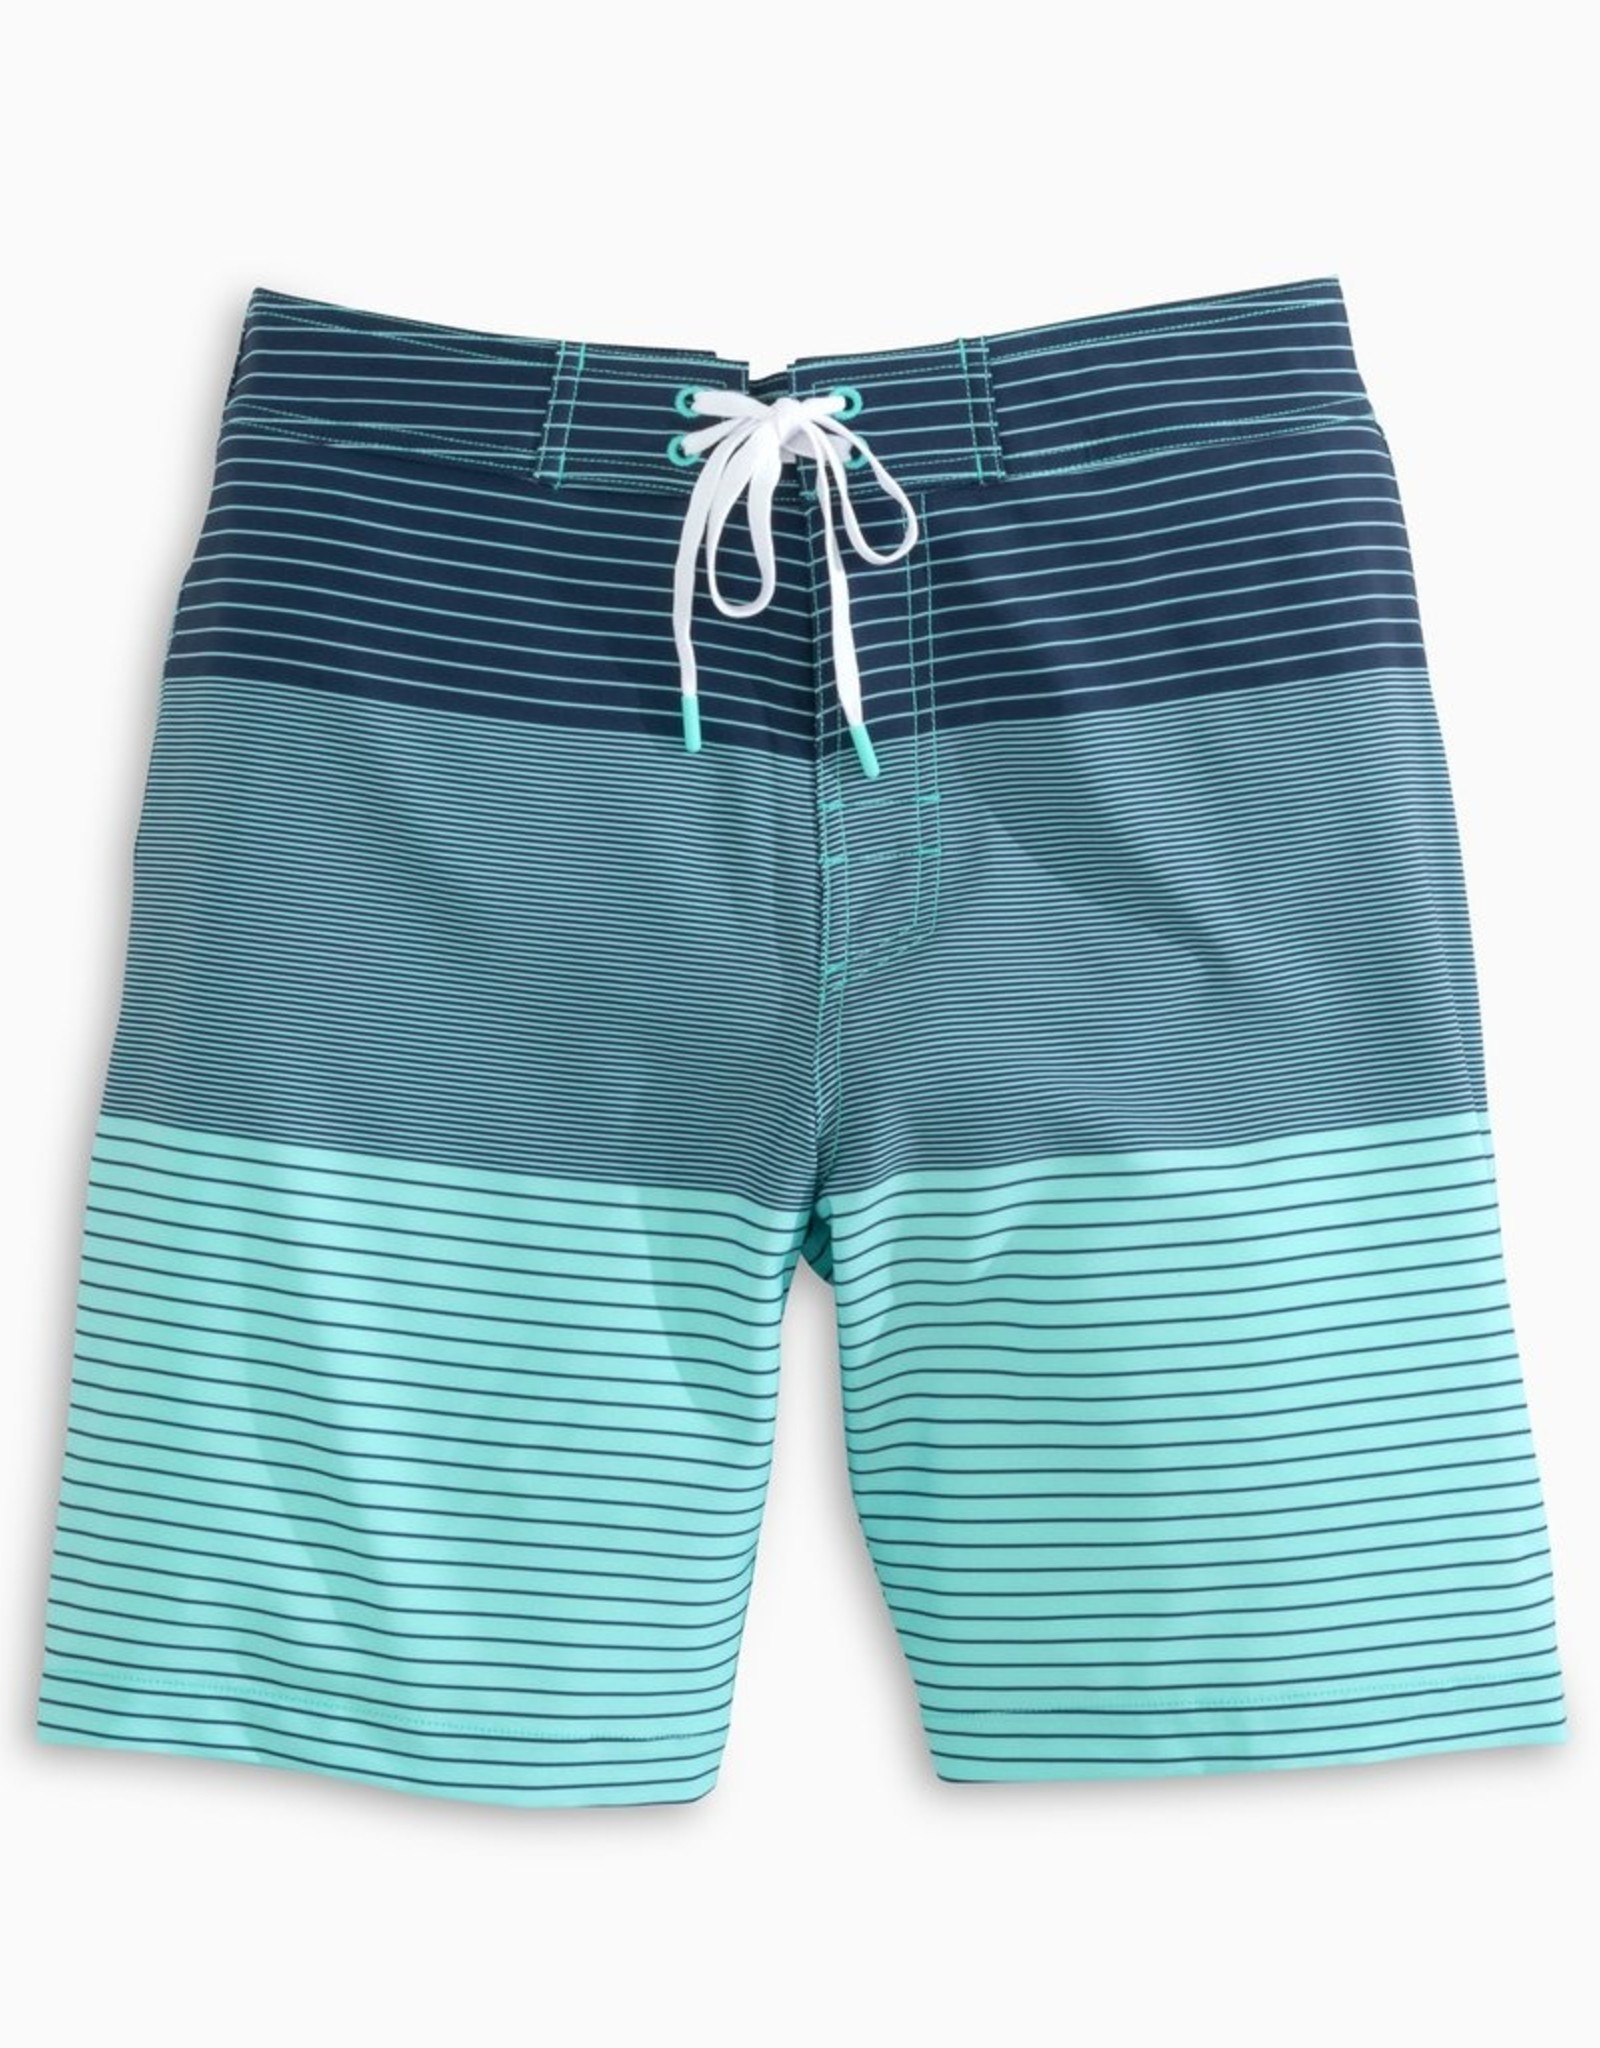 Southern Tide Conch Variegated Water Short